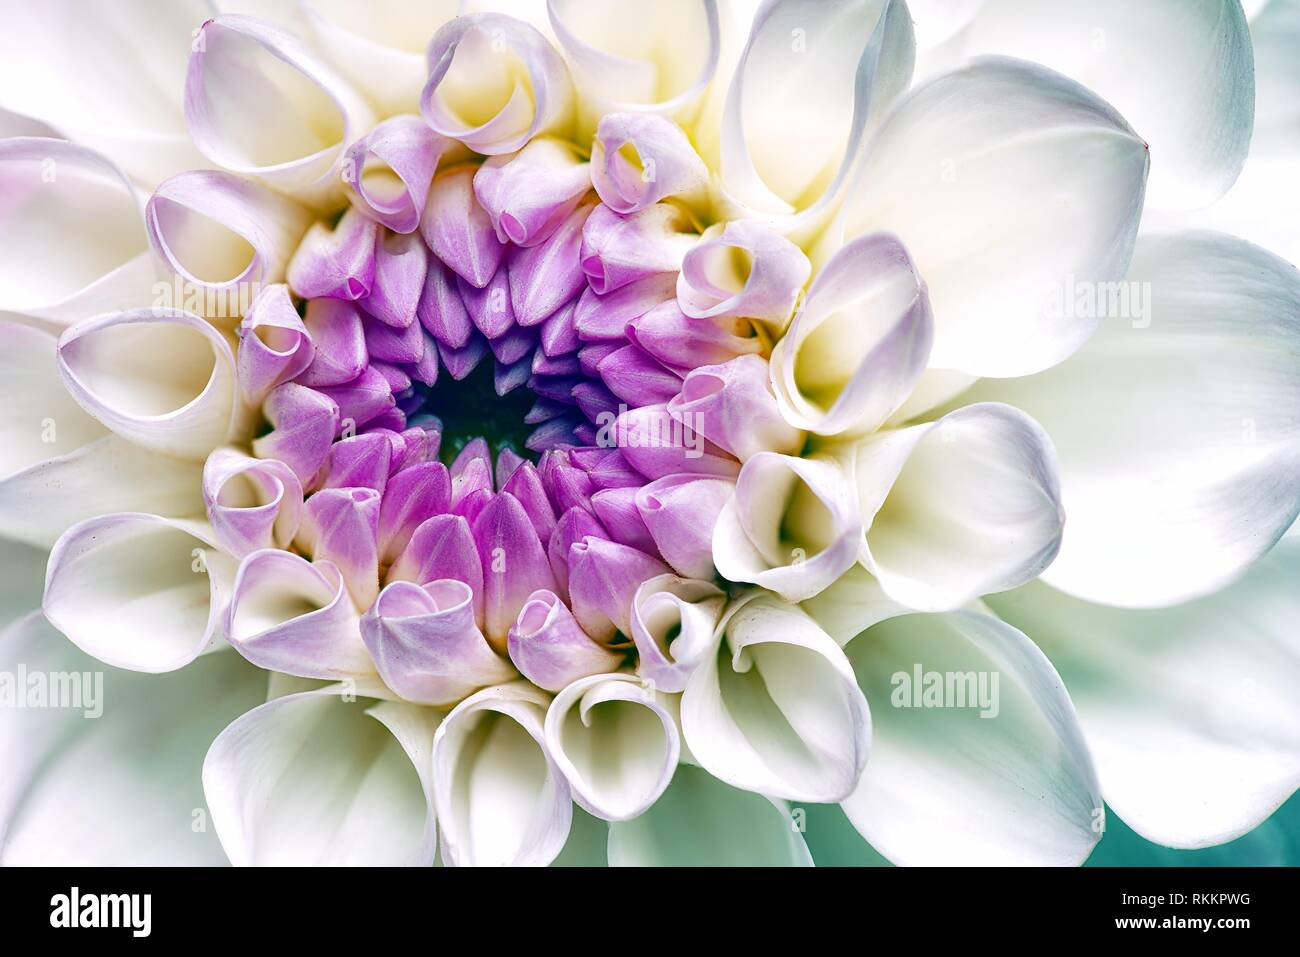 Dahlia blanc fleur. Abstract floral origines. Photo Stock